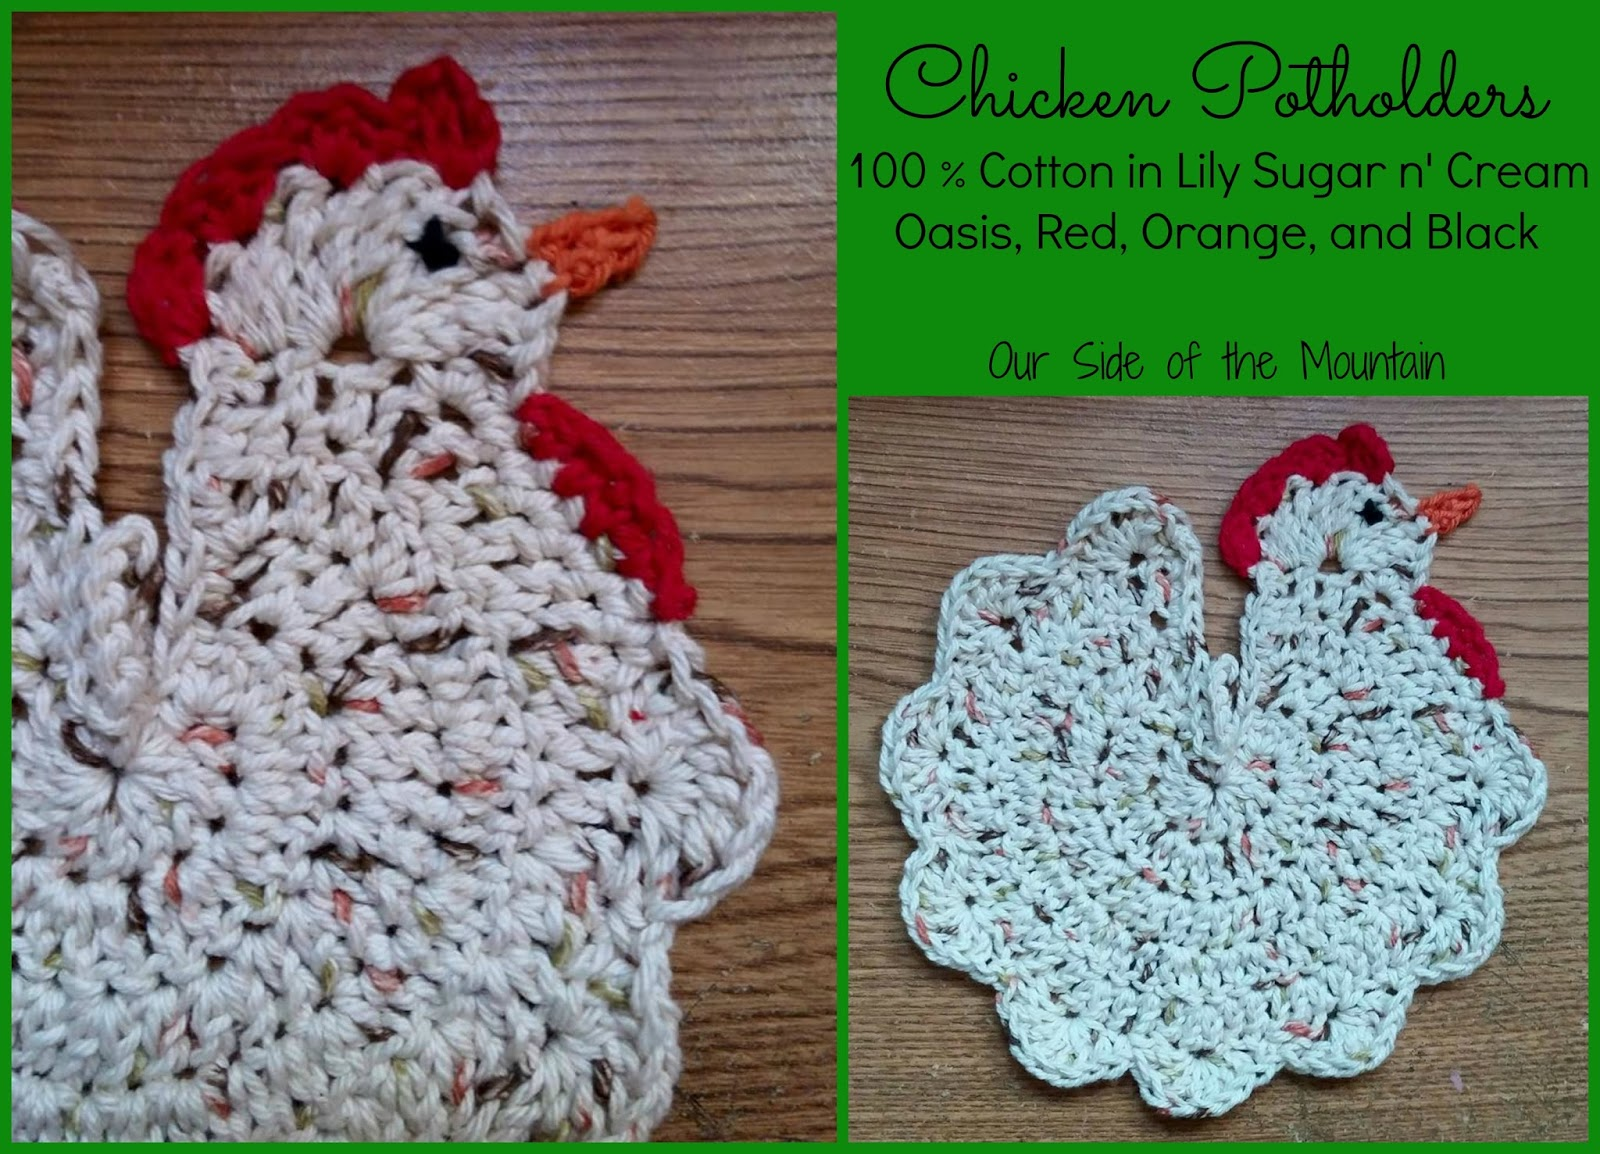 Our Side Of The Mountain Creative Crochet Chicken Potholders